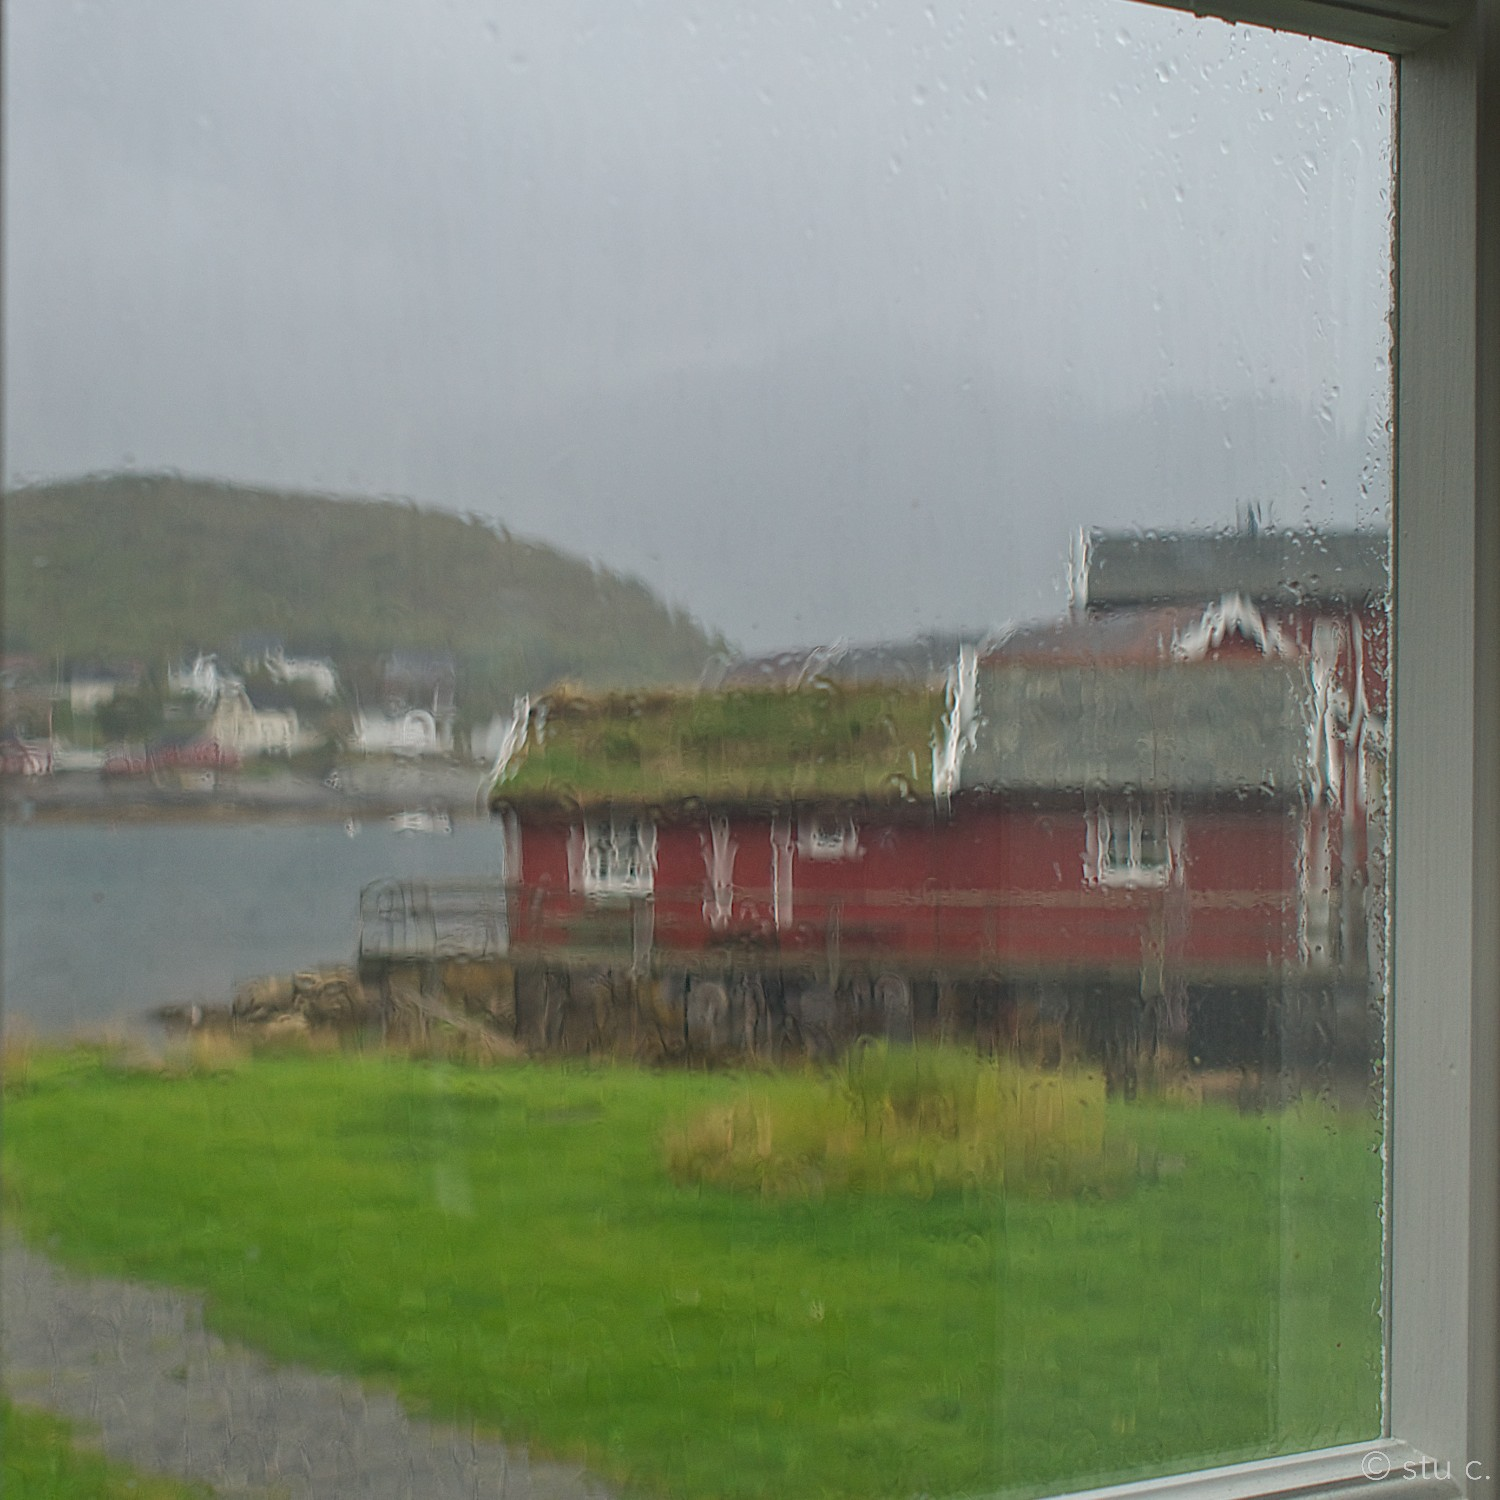 In this rainy view, you can still make out the stilts on which this rorbu has been built